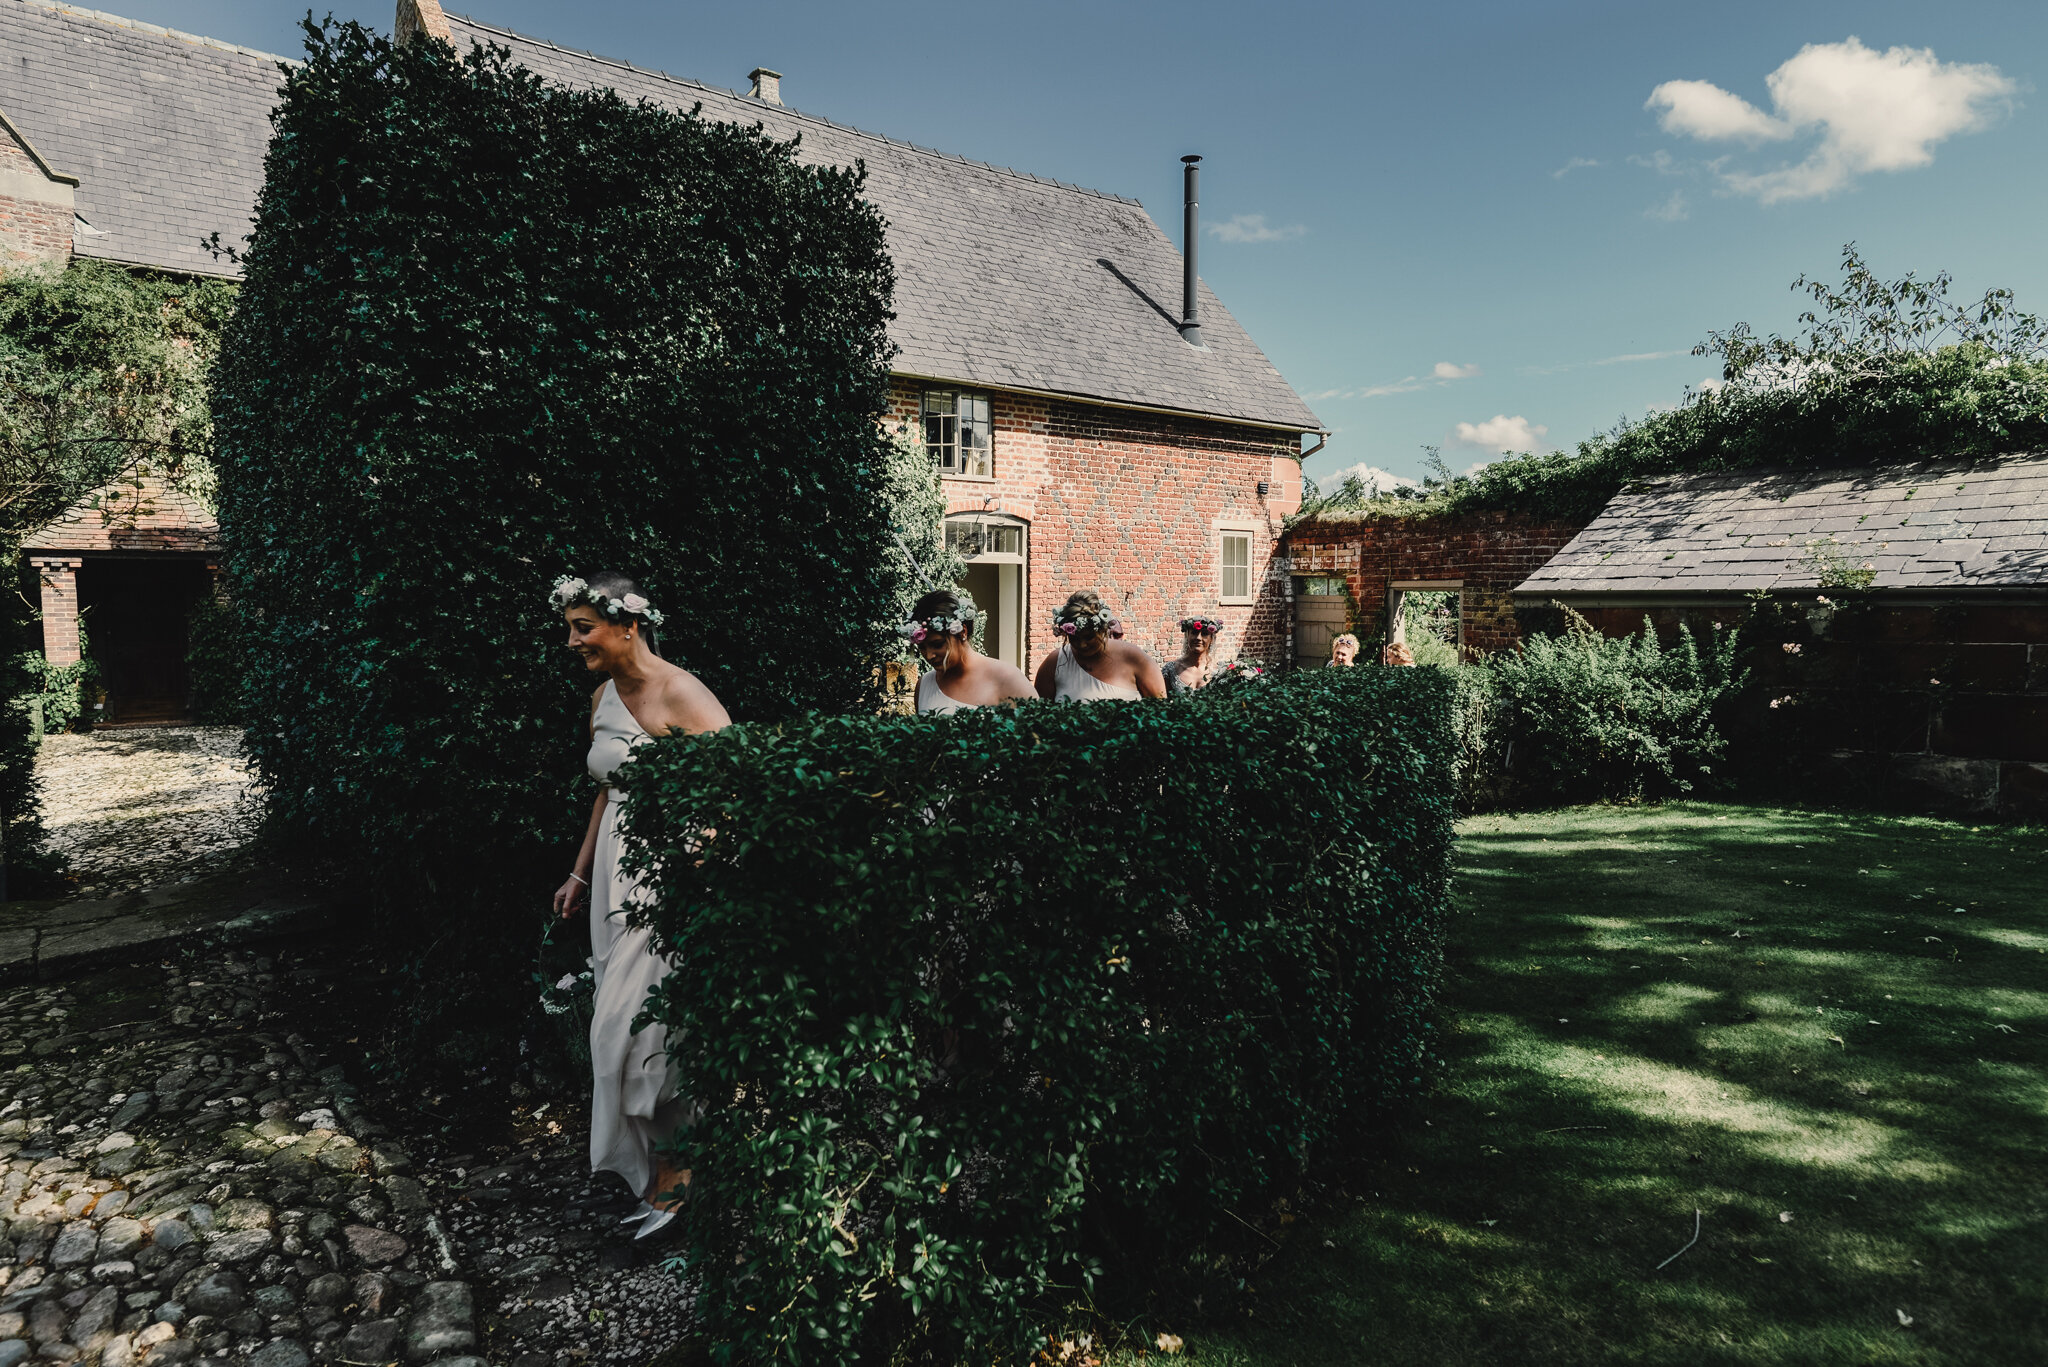 Festival-Barn-Wedding-Shropshire-Pimhill-Barn-Wedding-PhotographyLisa and Rich-81.jpg